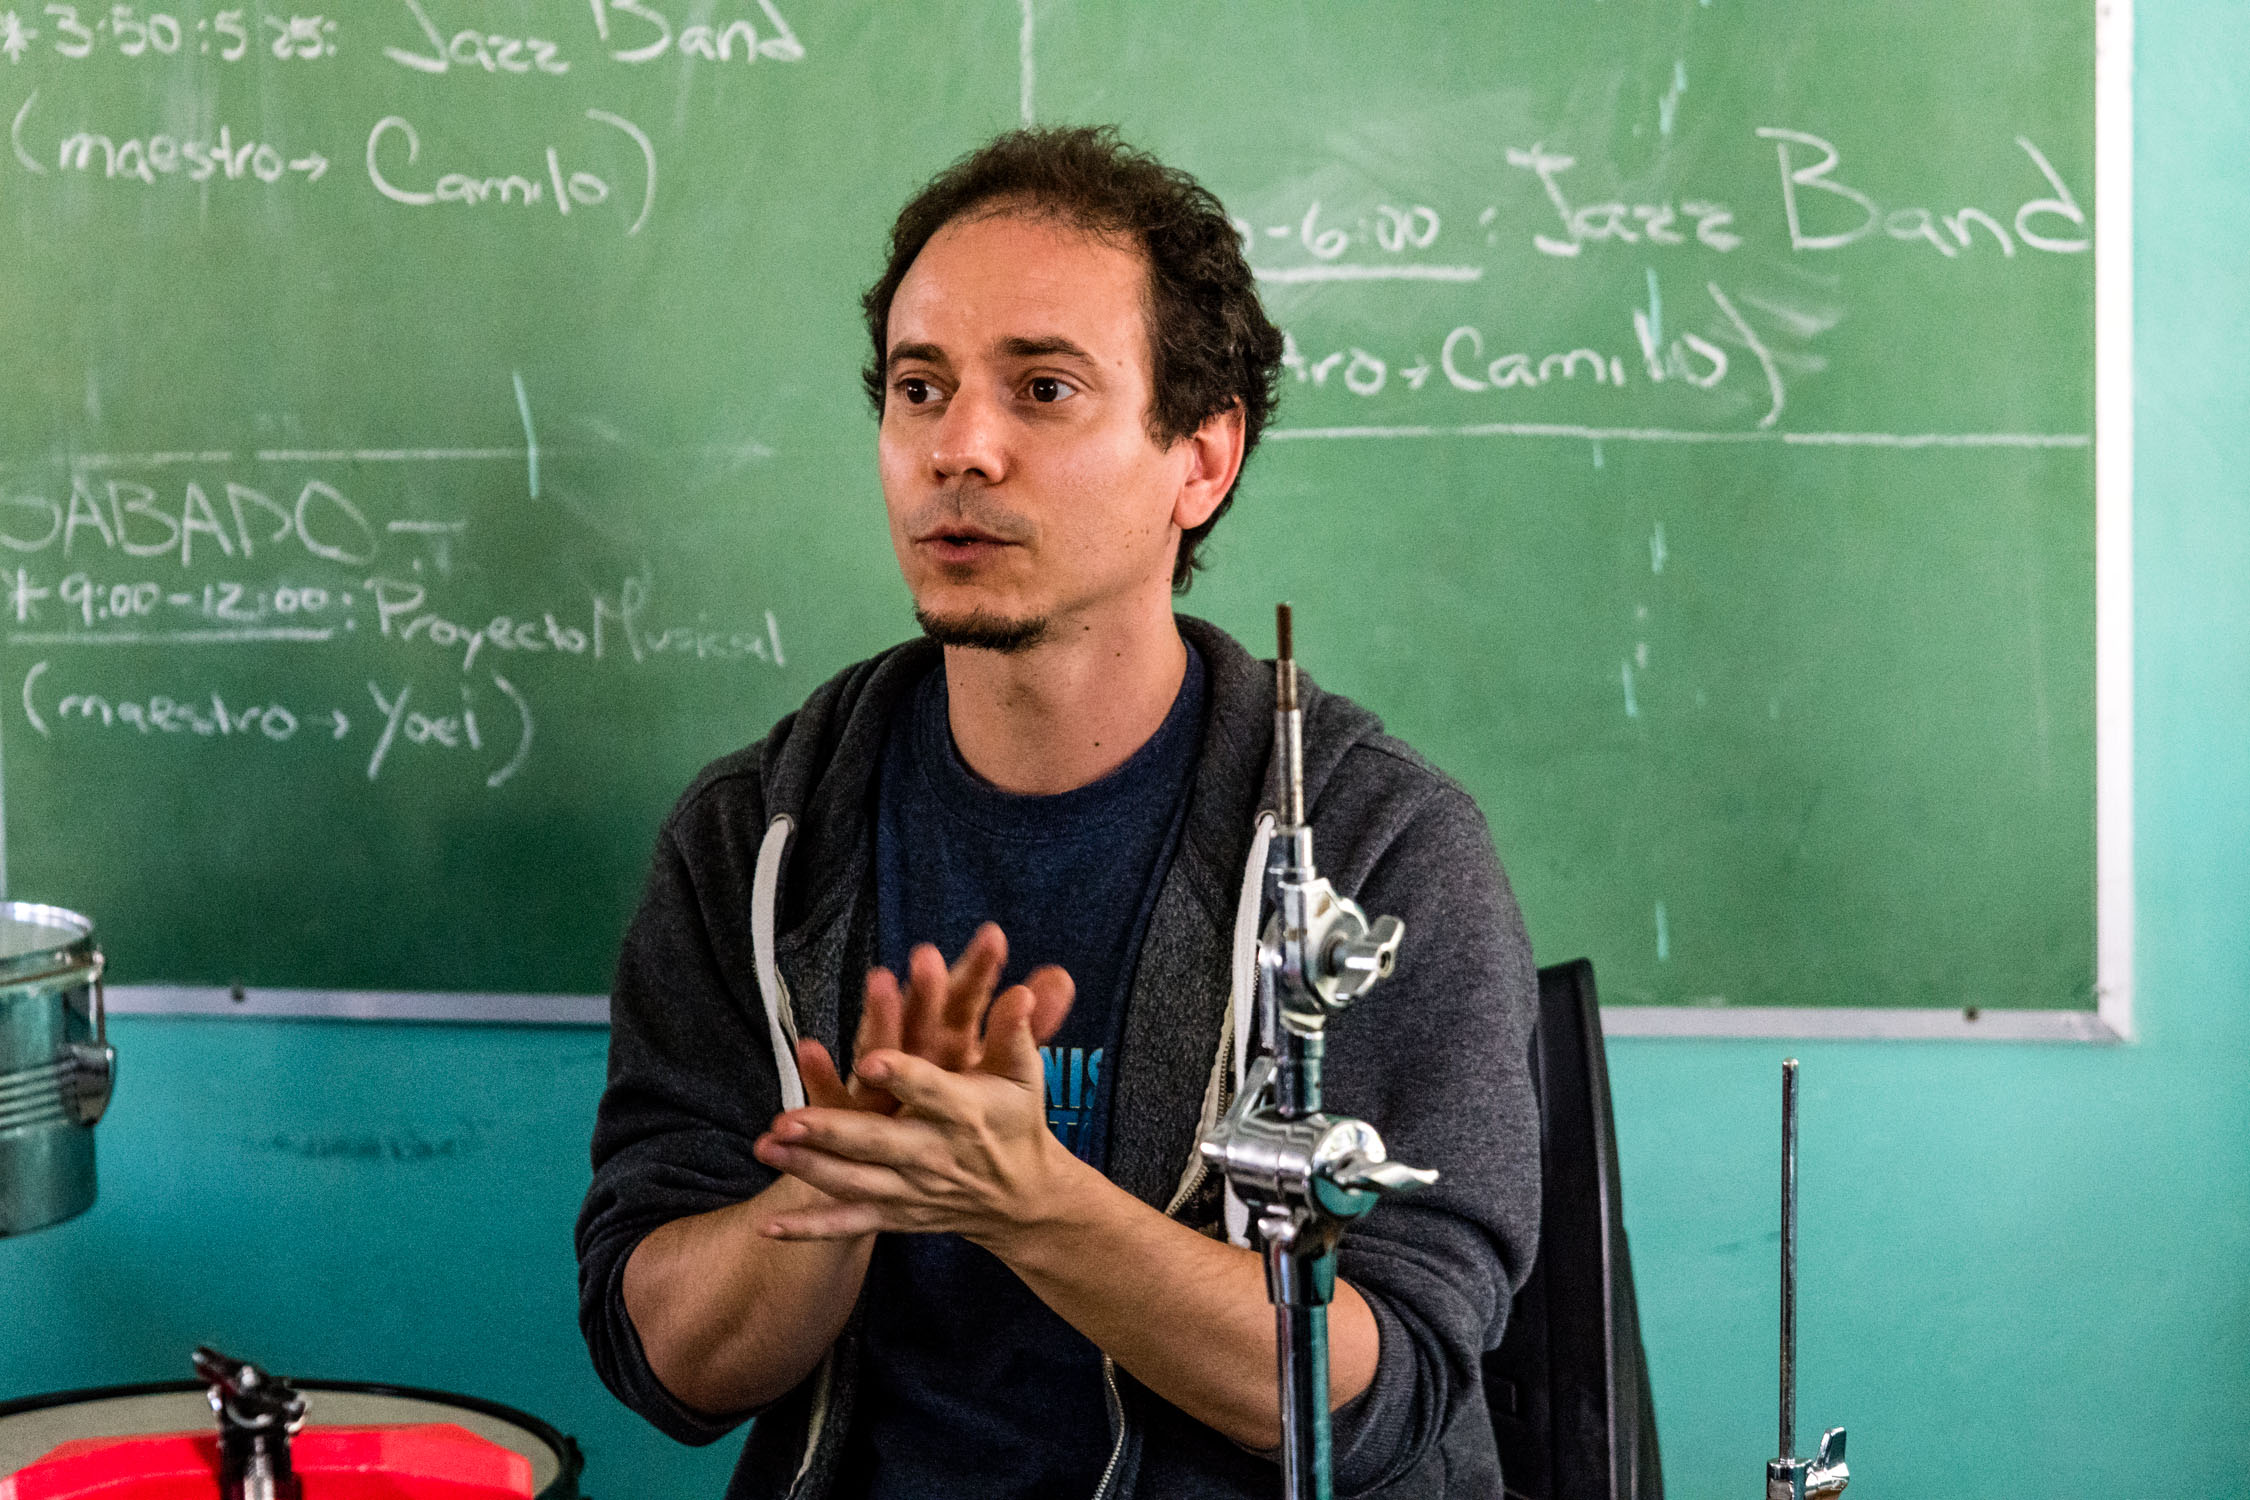 Dafnis Prieto teaching at Escuela Nacional de Arte (La ENA), Havana, Cuba, January 2019 (Photo by David Garten)